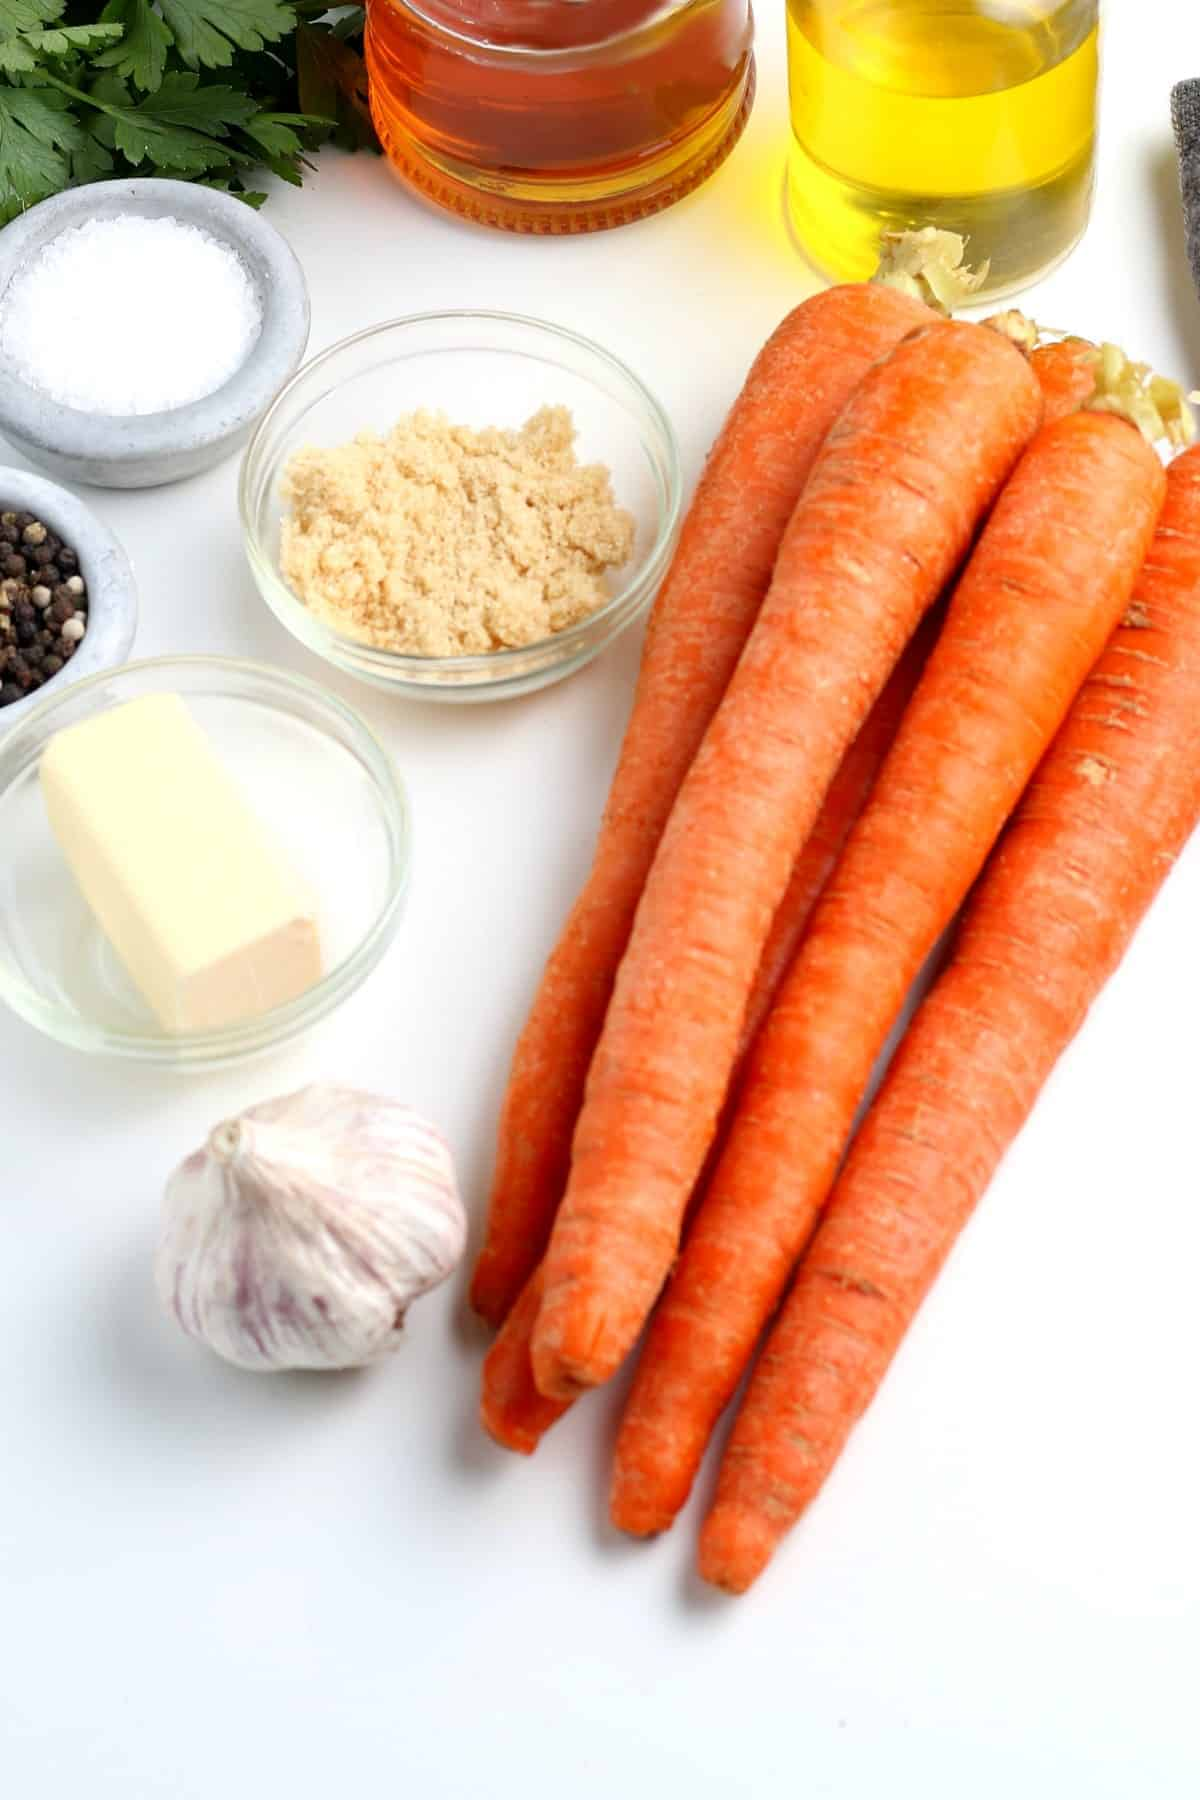 Ingredients to make glazed maple carrots all measured out.